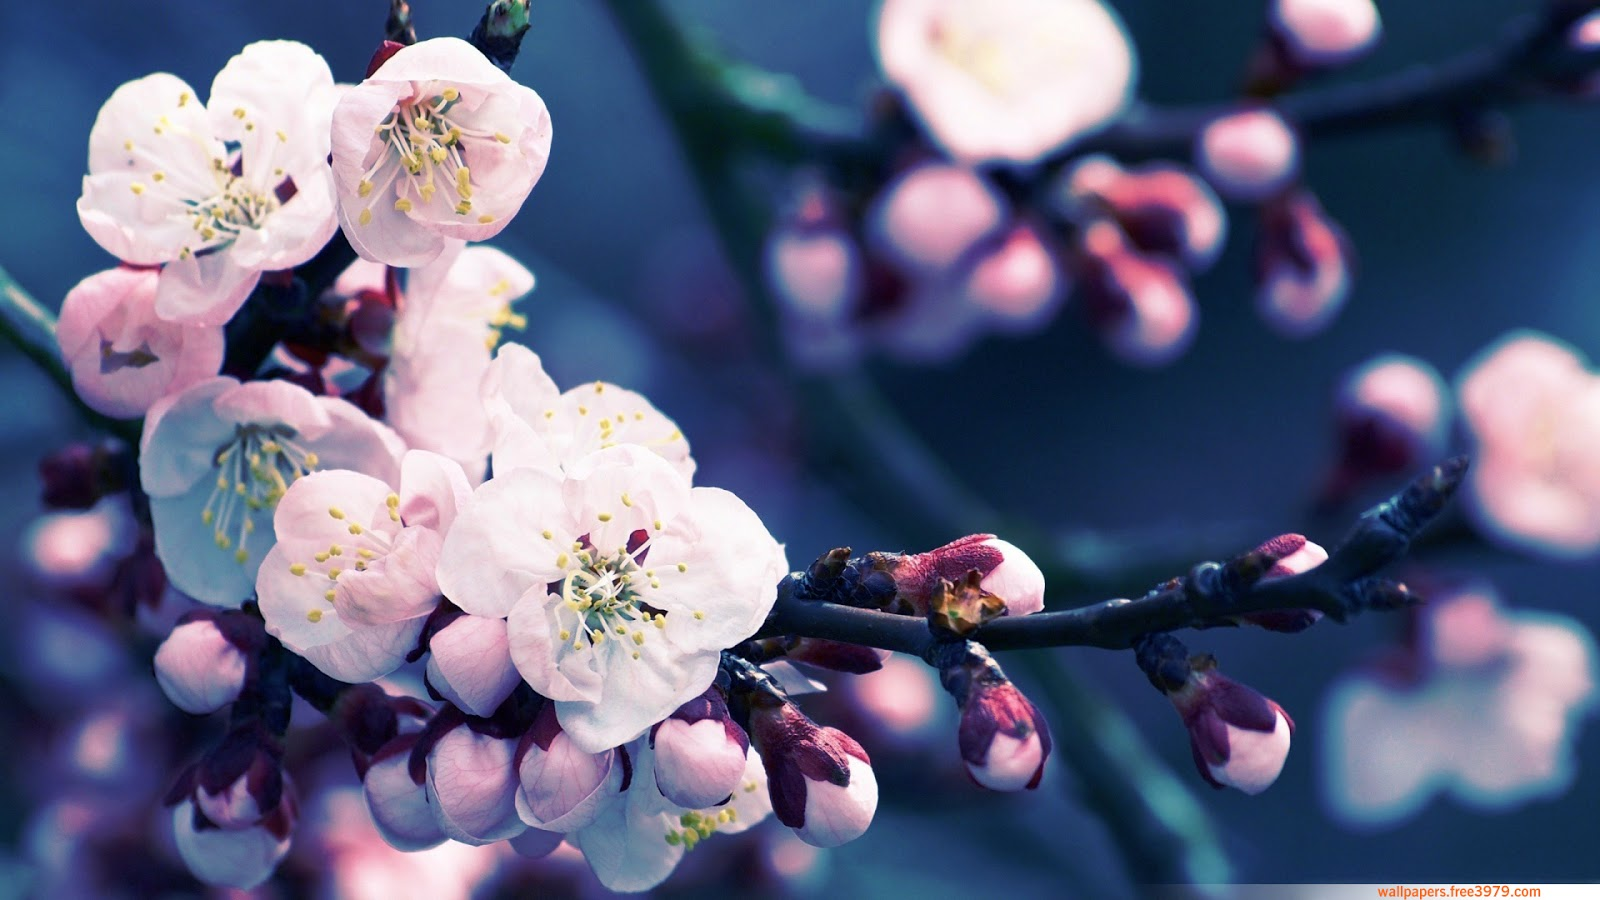 Wallpapers Wallpaper  20  Asian Cherry Blossom Flower Cherry Blossom Flower Cherry Blossom Flower Cherry Blossom Flower